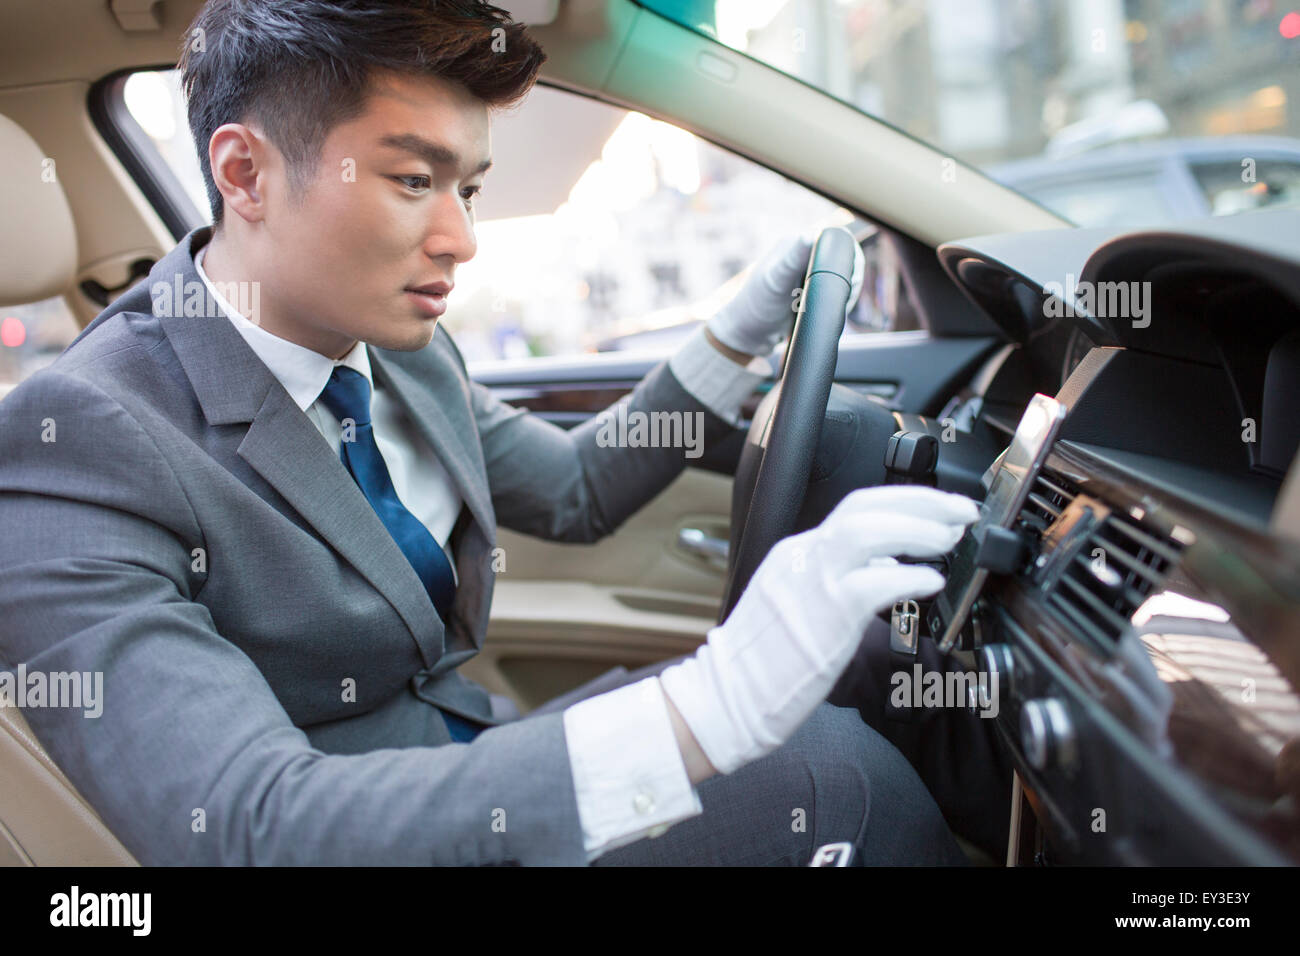 Chauffeur using smart phone as gps navigation for car - Stock Image